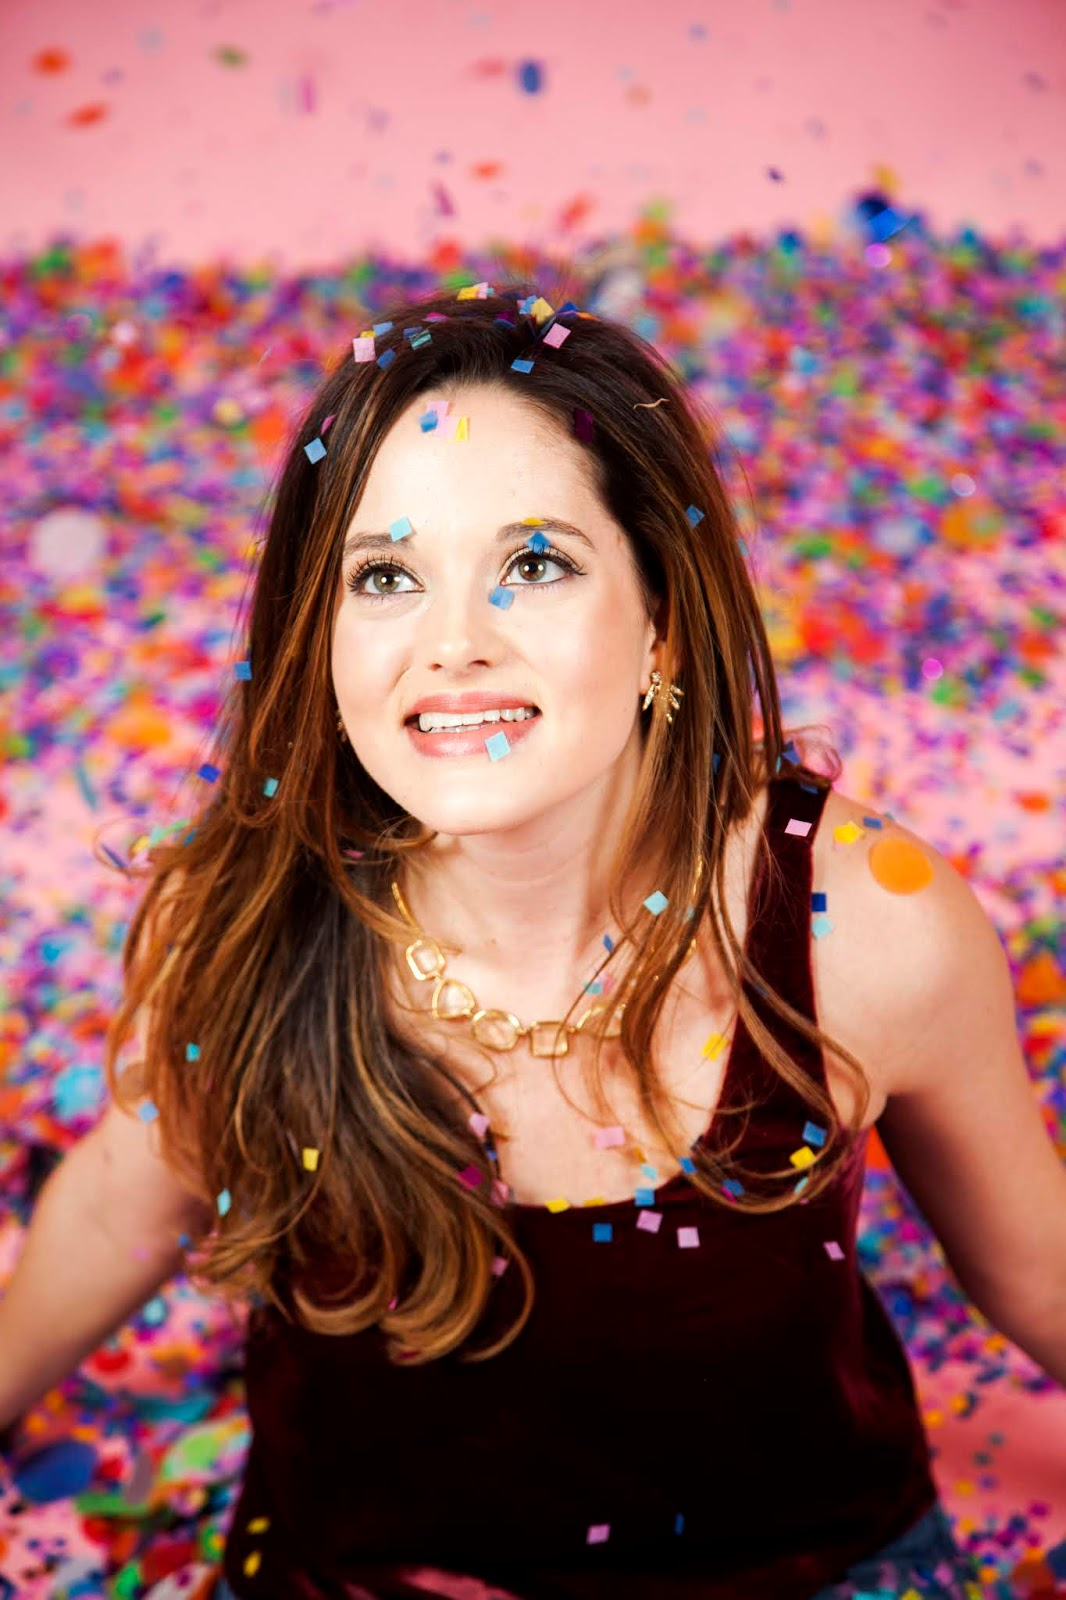 Nyc fashion blogger Kathleen Harper's Confetti Project pics